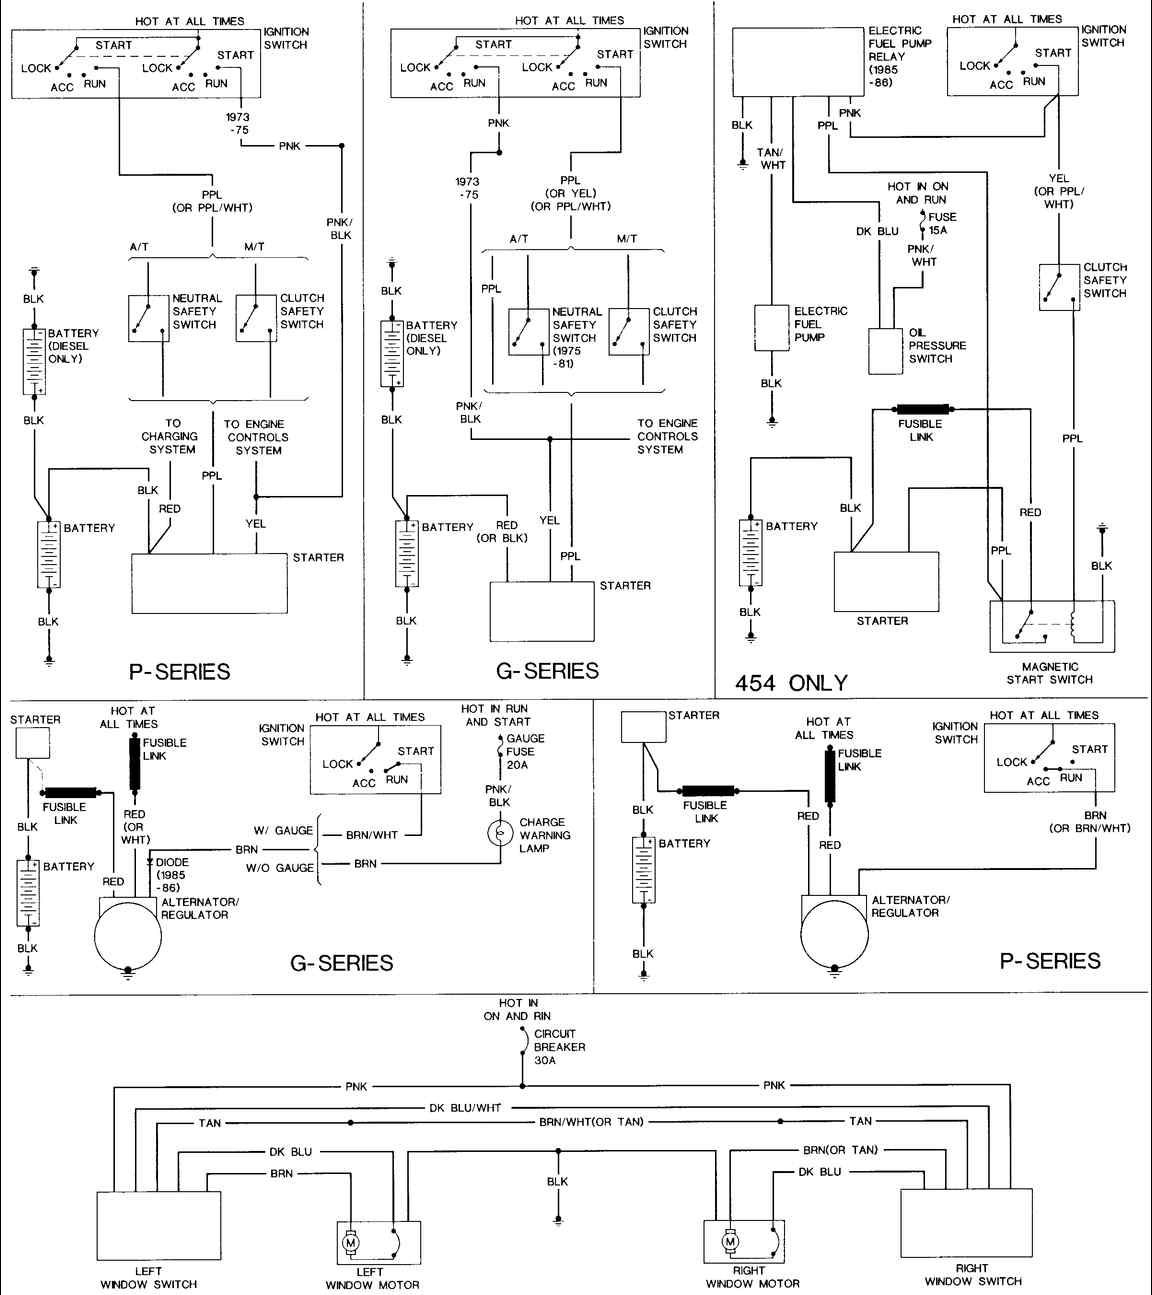 1995 chevy g20 wiring diagram - schema wiring diagrams wake-recent -  wake-recent.cultlab.it  cultlab.it